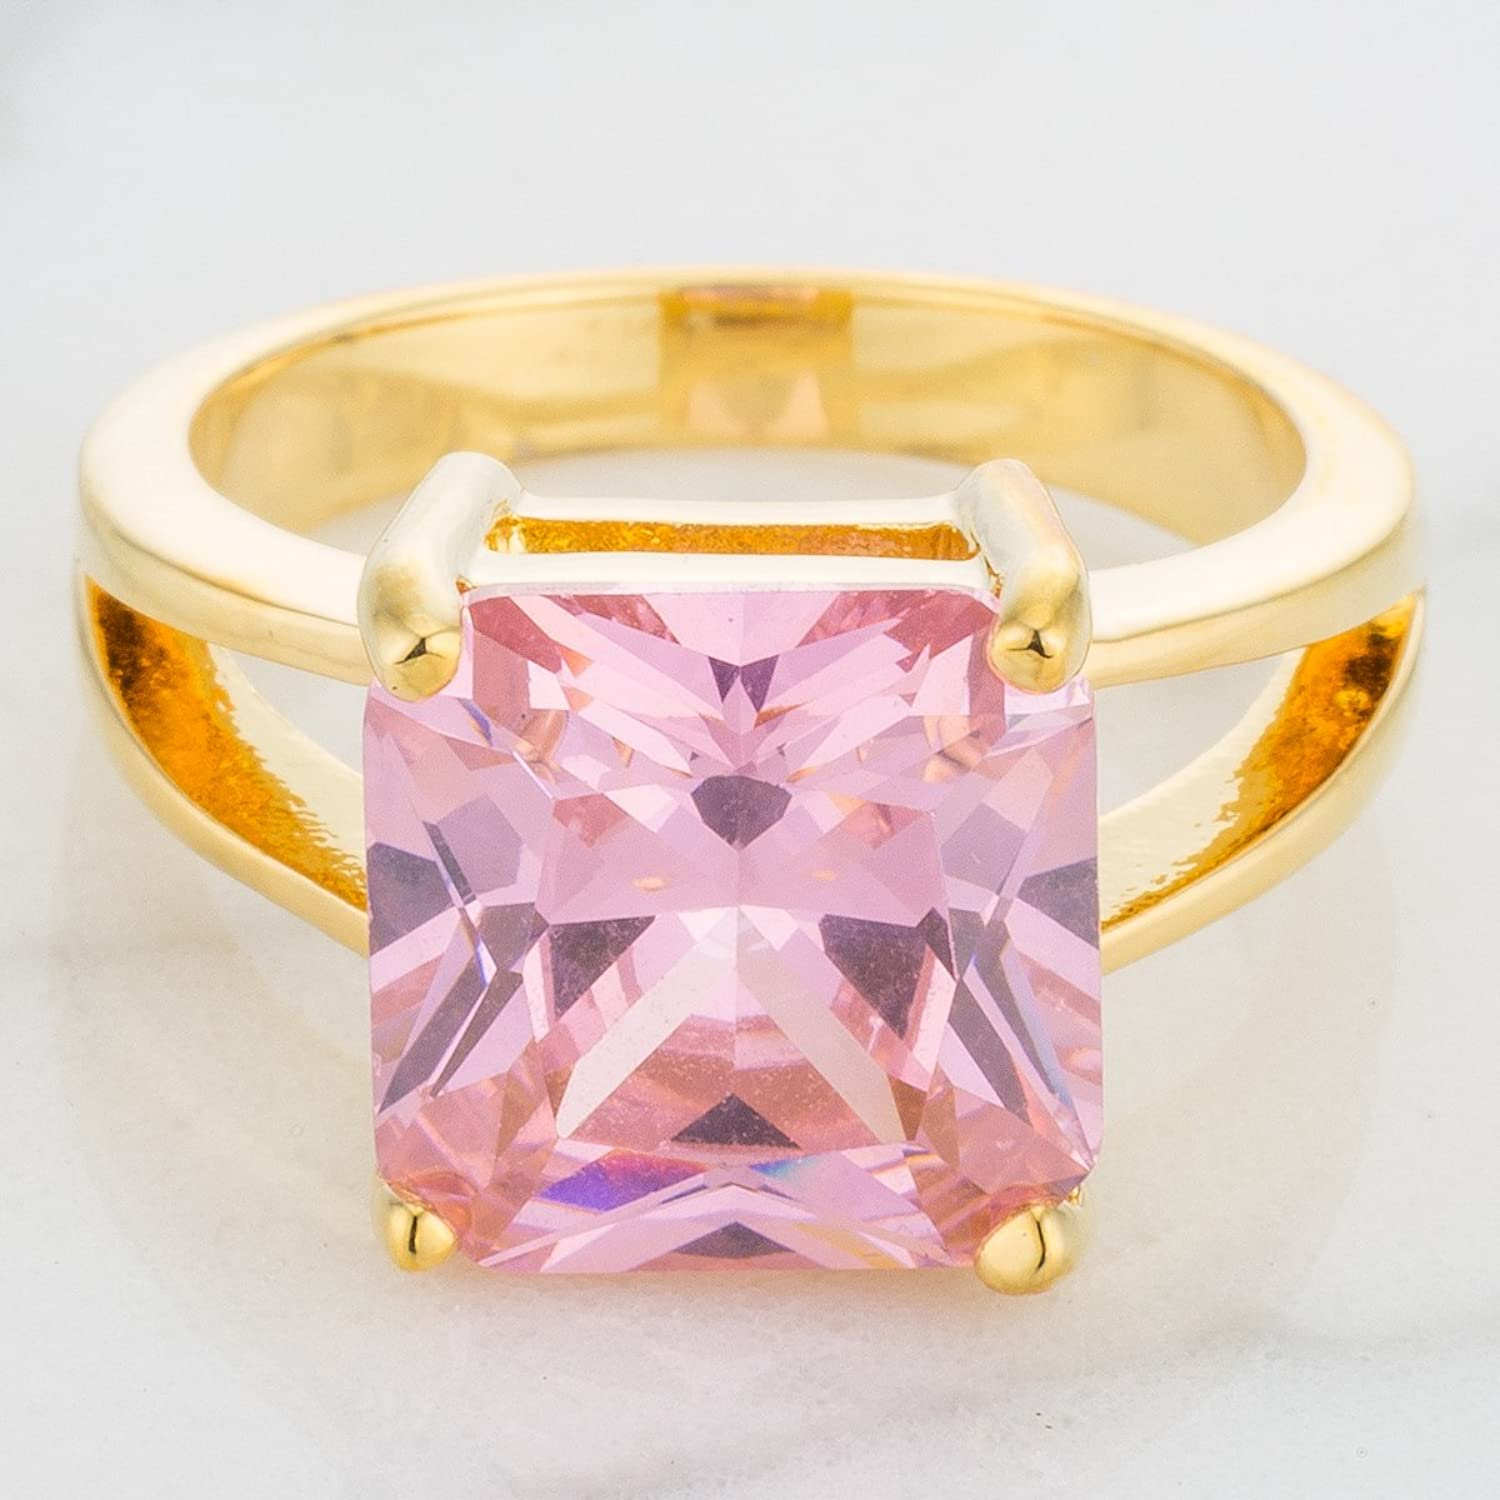 Amazon.com: 18k Gold Plated Princess Cut Pink Ice Color Cubic ...